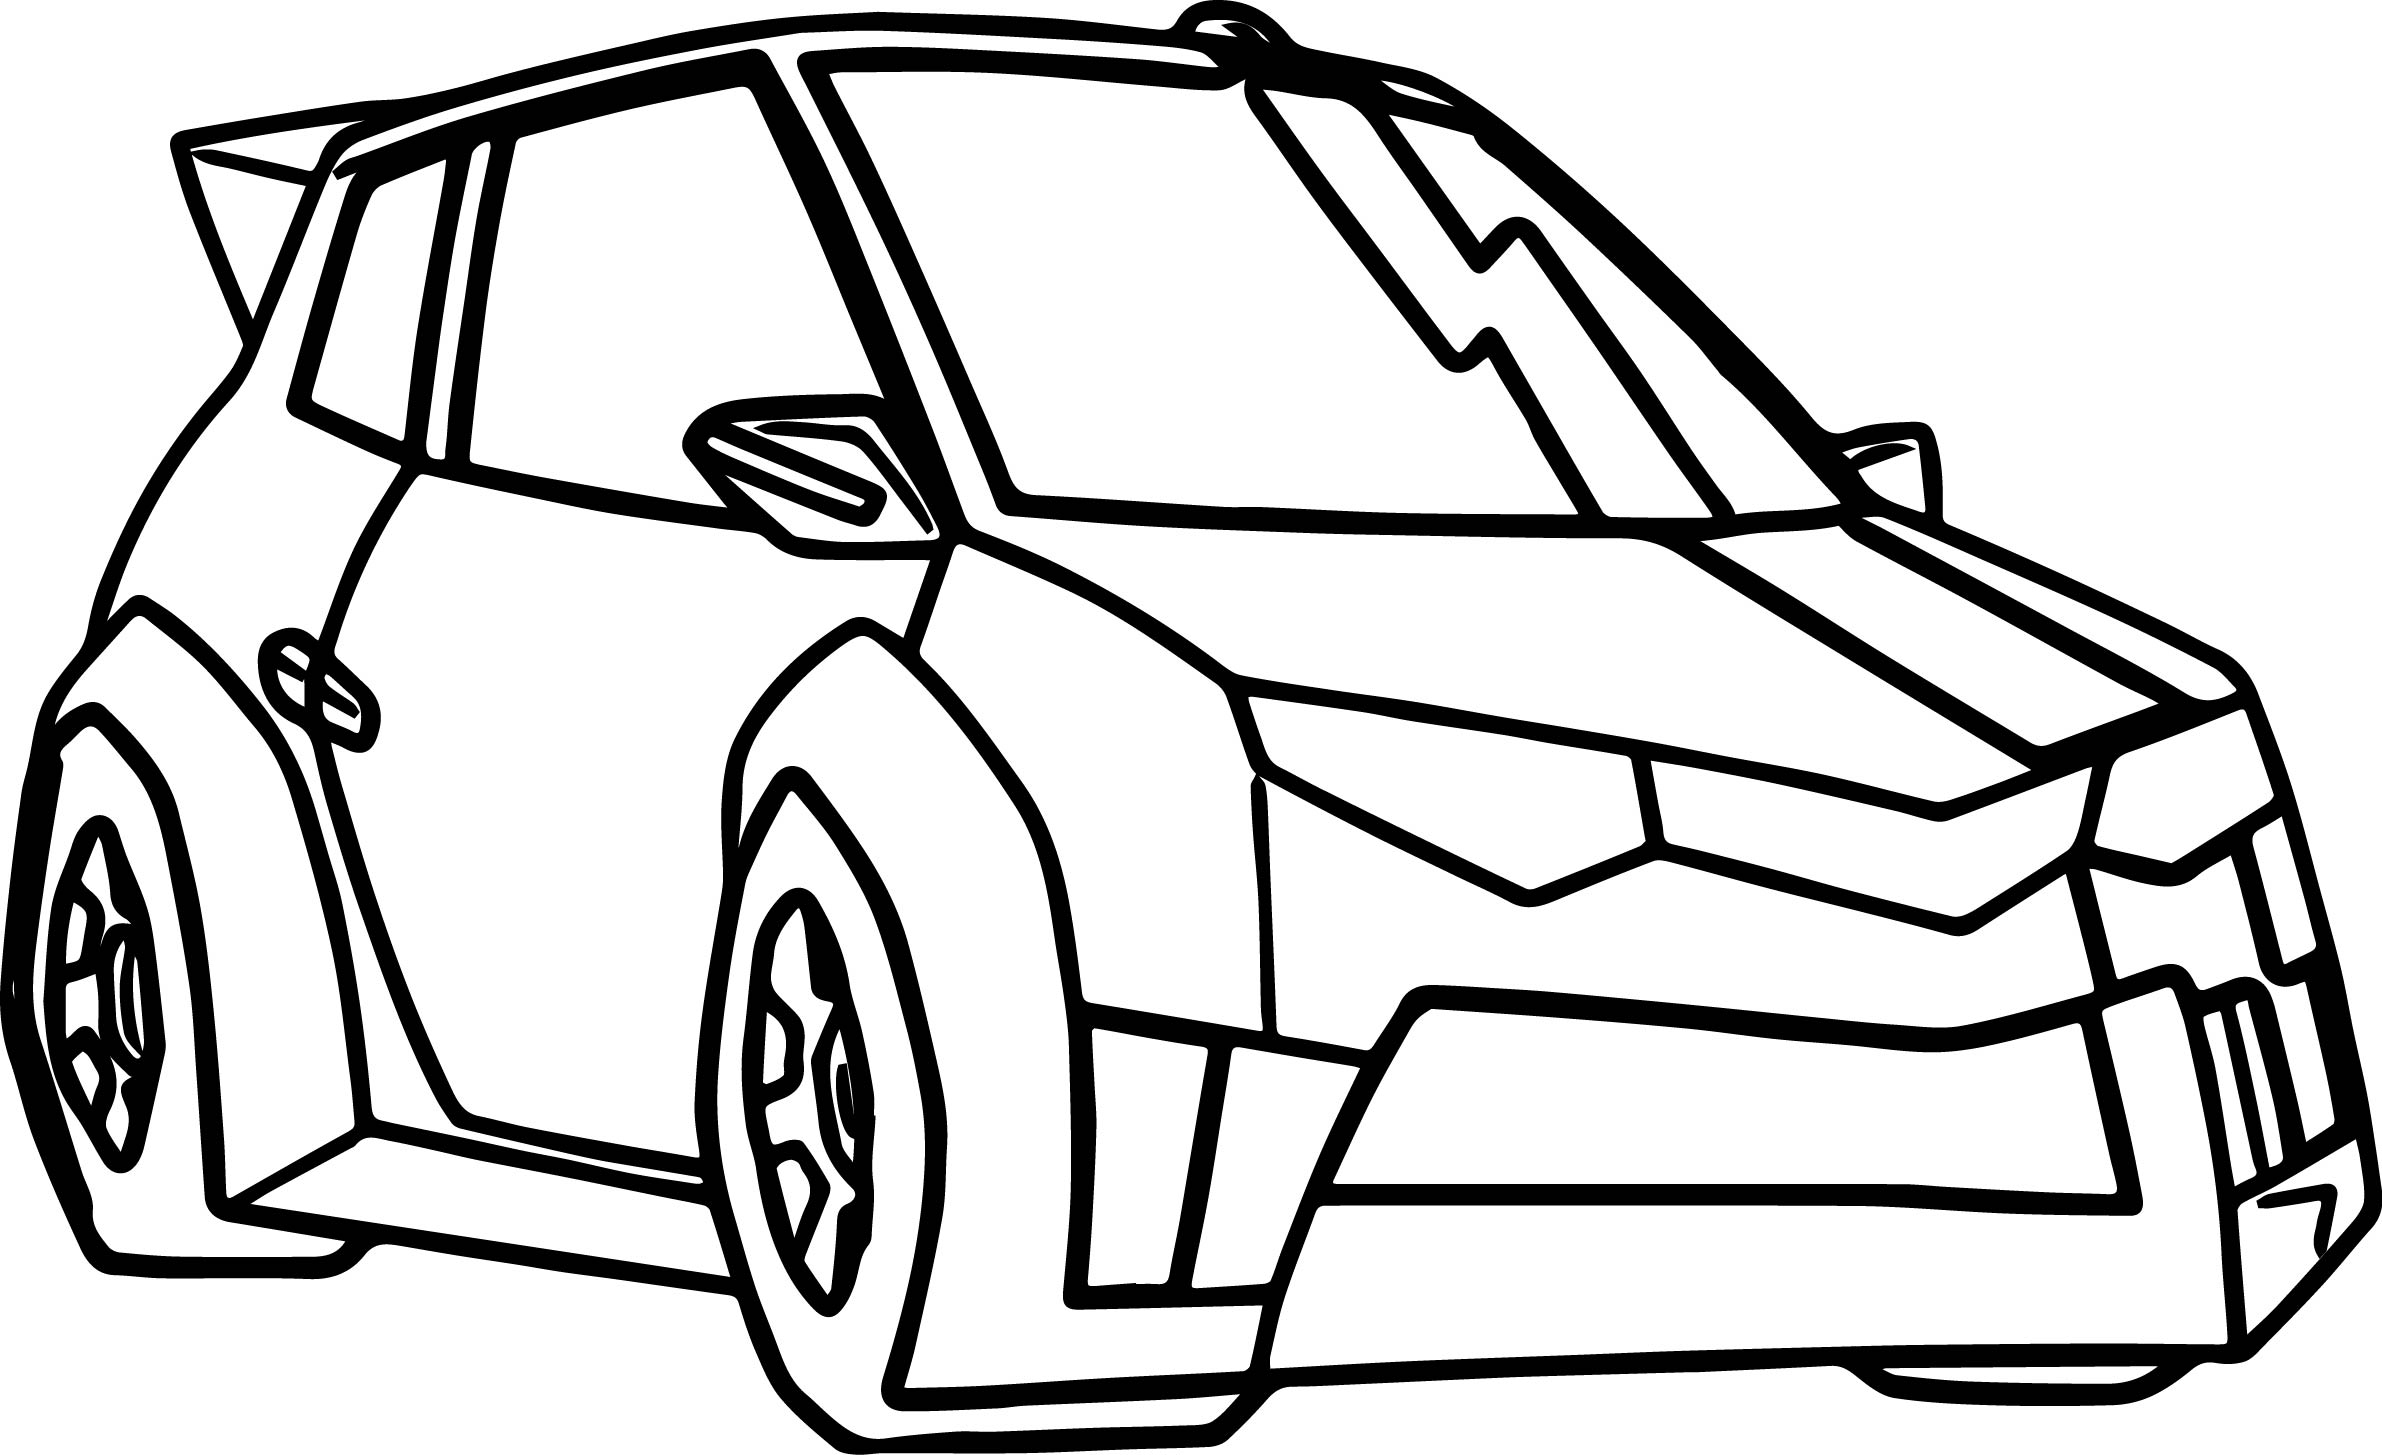 police car coloring pages bumblebee transformers coloring pages car pictures car - Police Car Coloring Pages